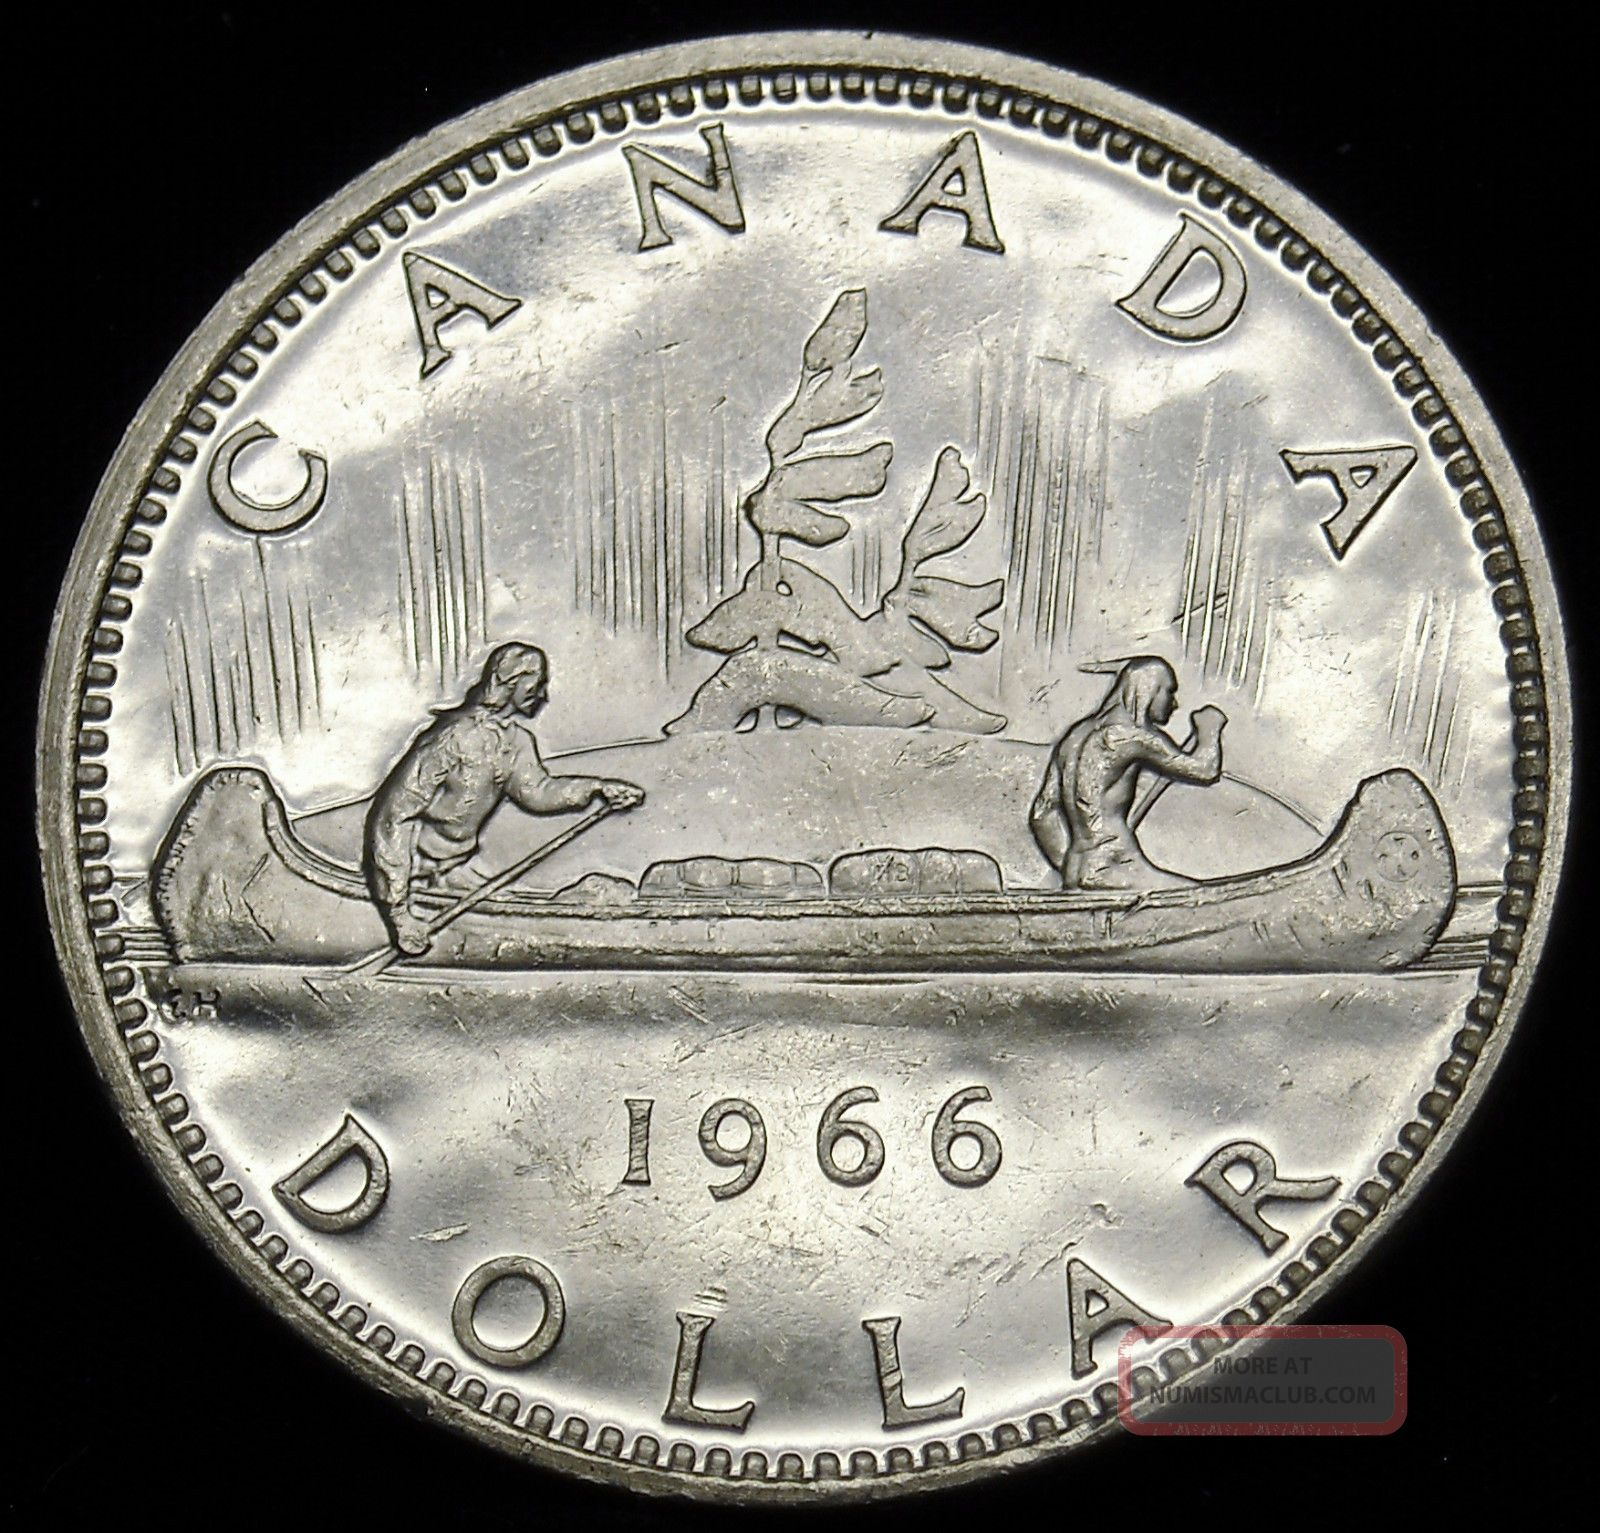 1966 Canadian Silver Dollar.  600 Actual Silver Weight As Pictured S&h H553 Coins: Canada photo